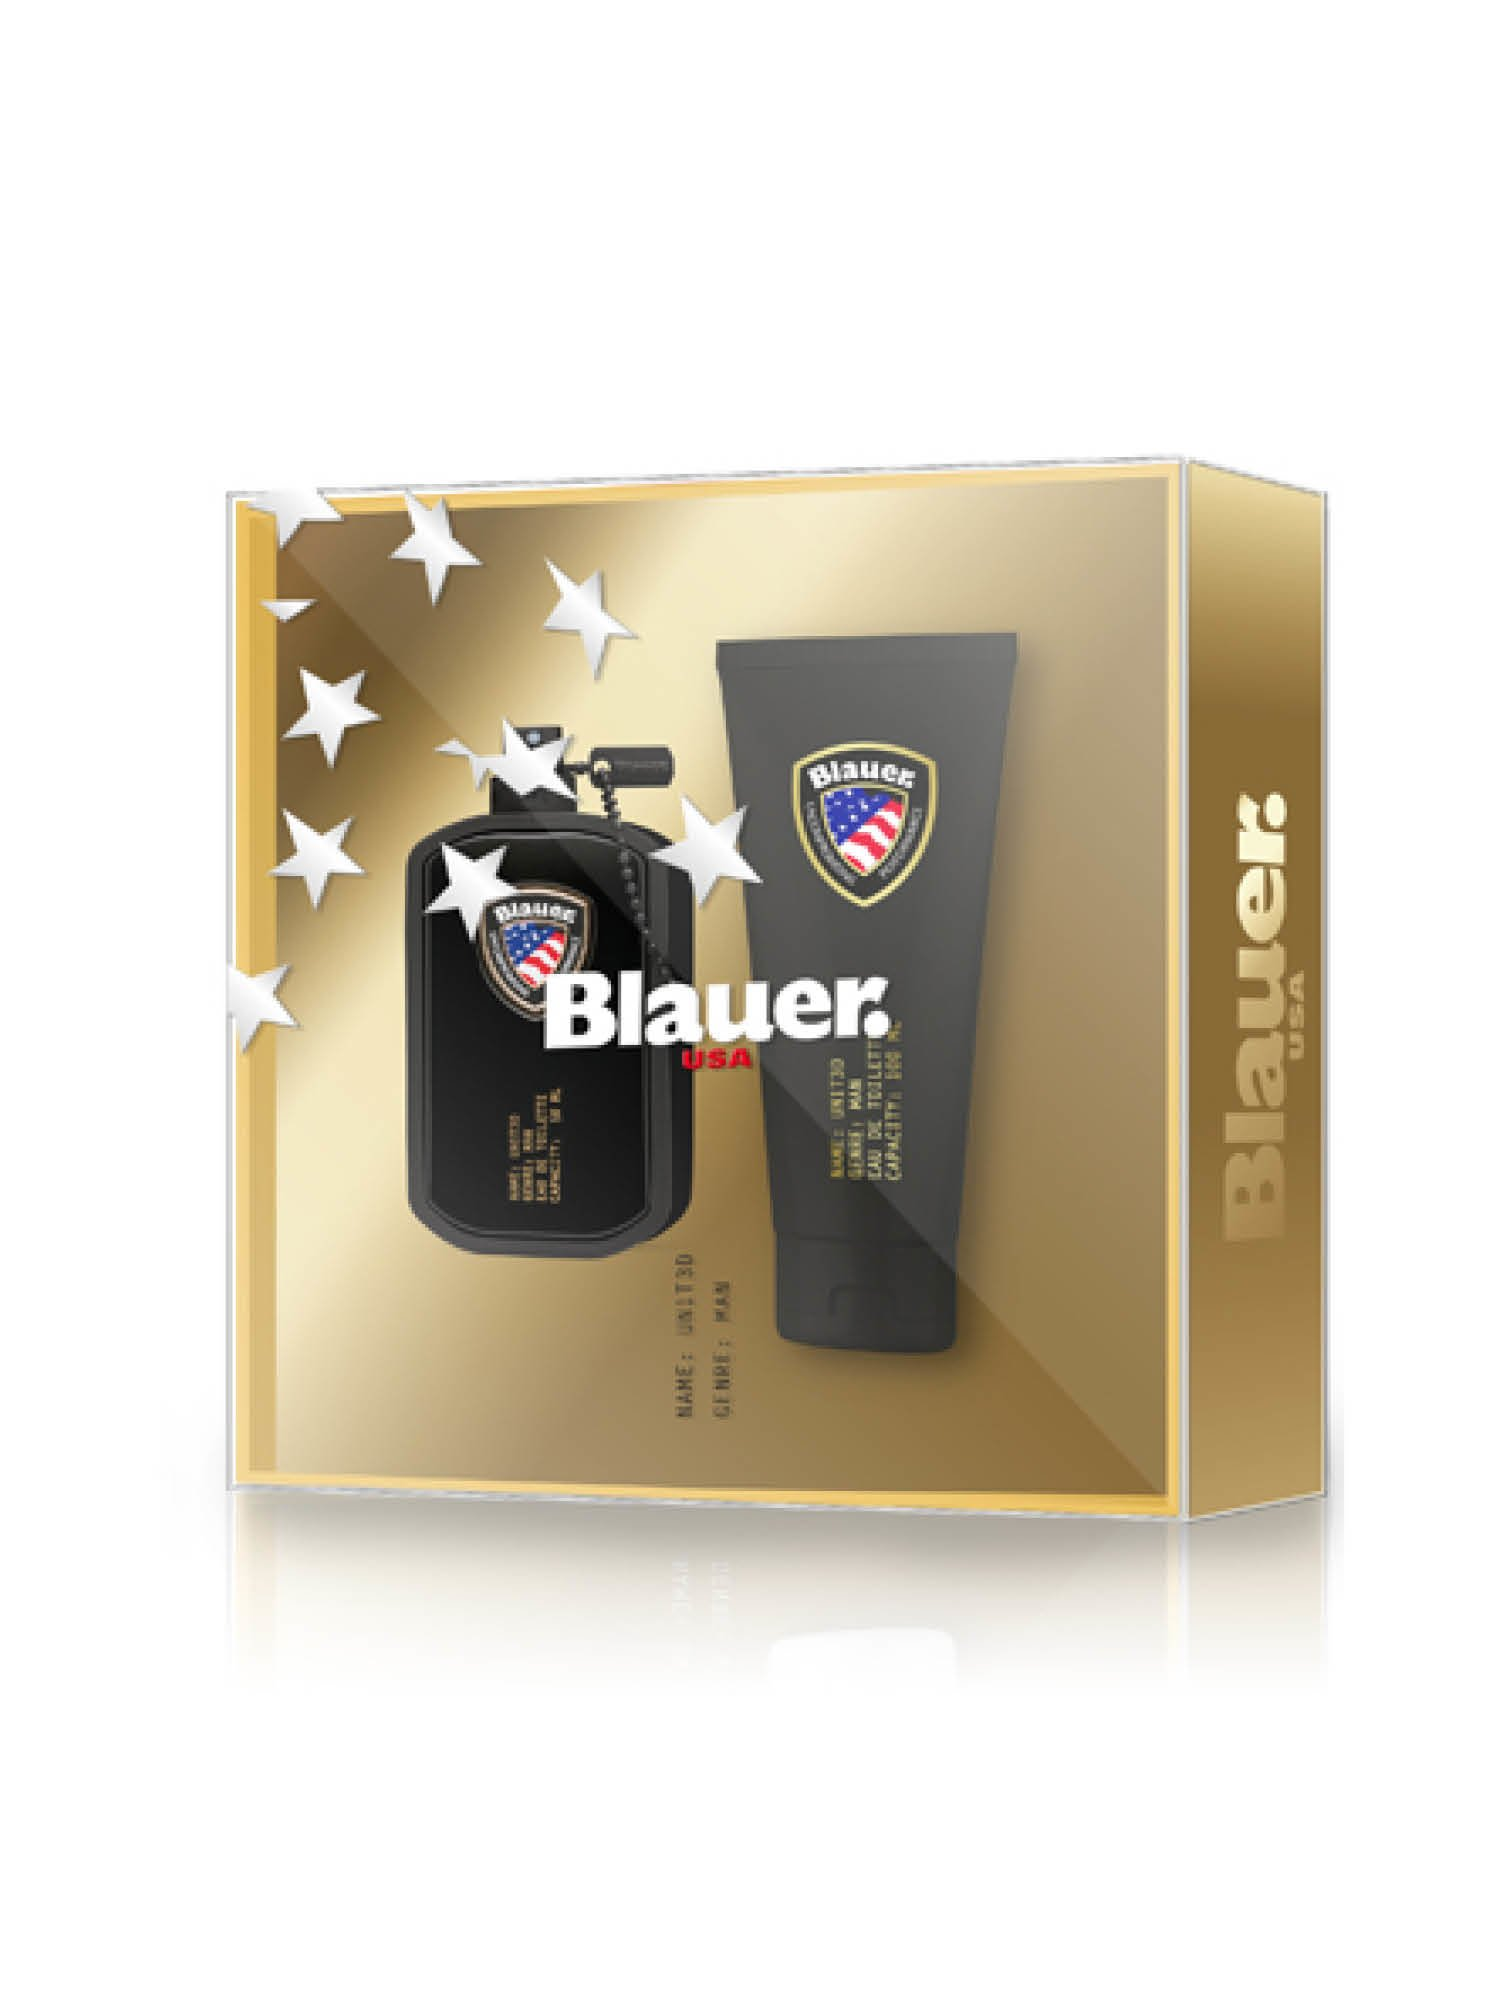 BLAUER UN1T3D COFFRET FOR MAN - Blauer